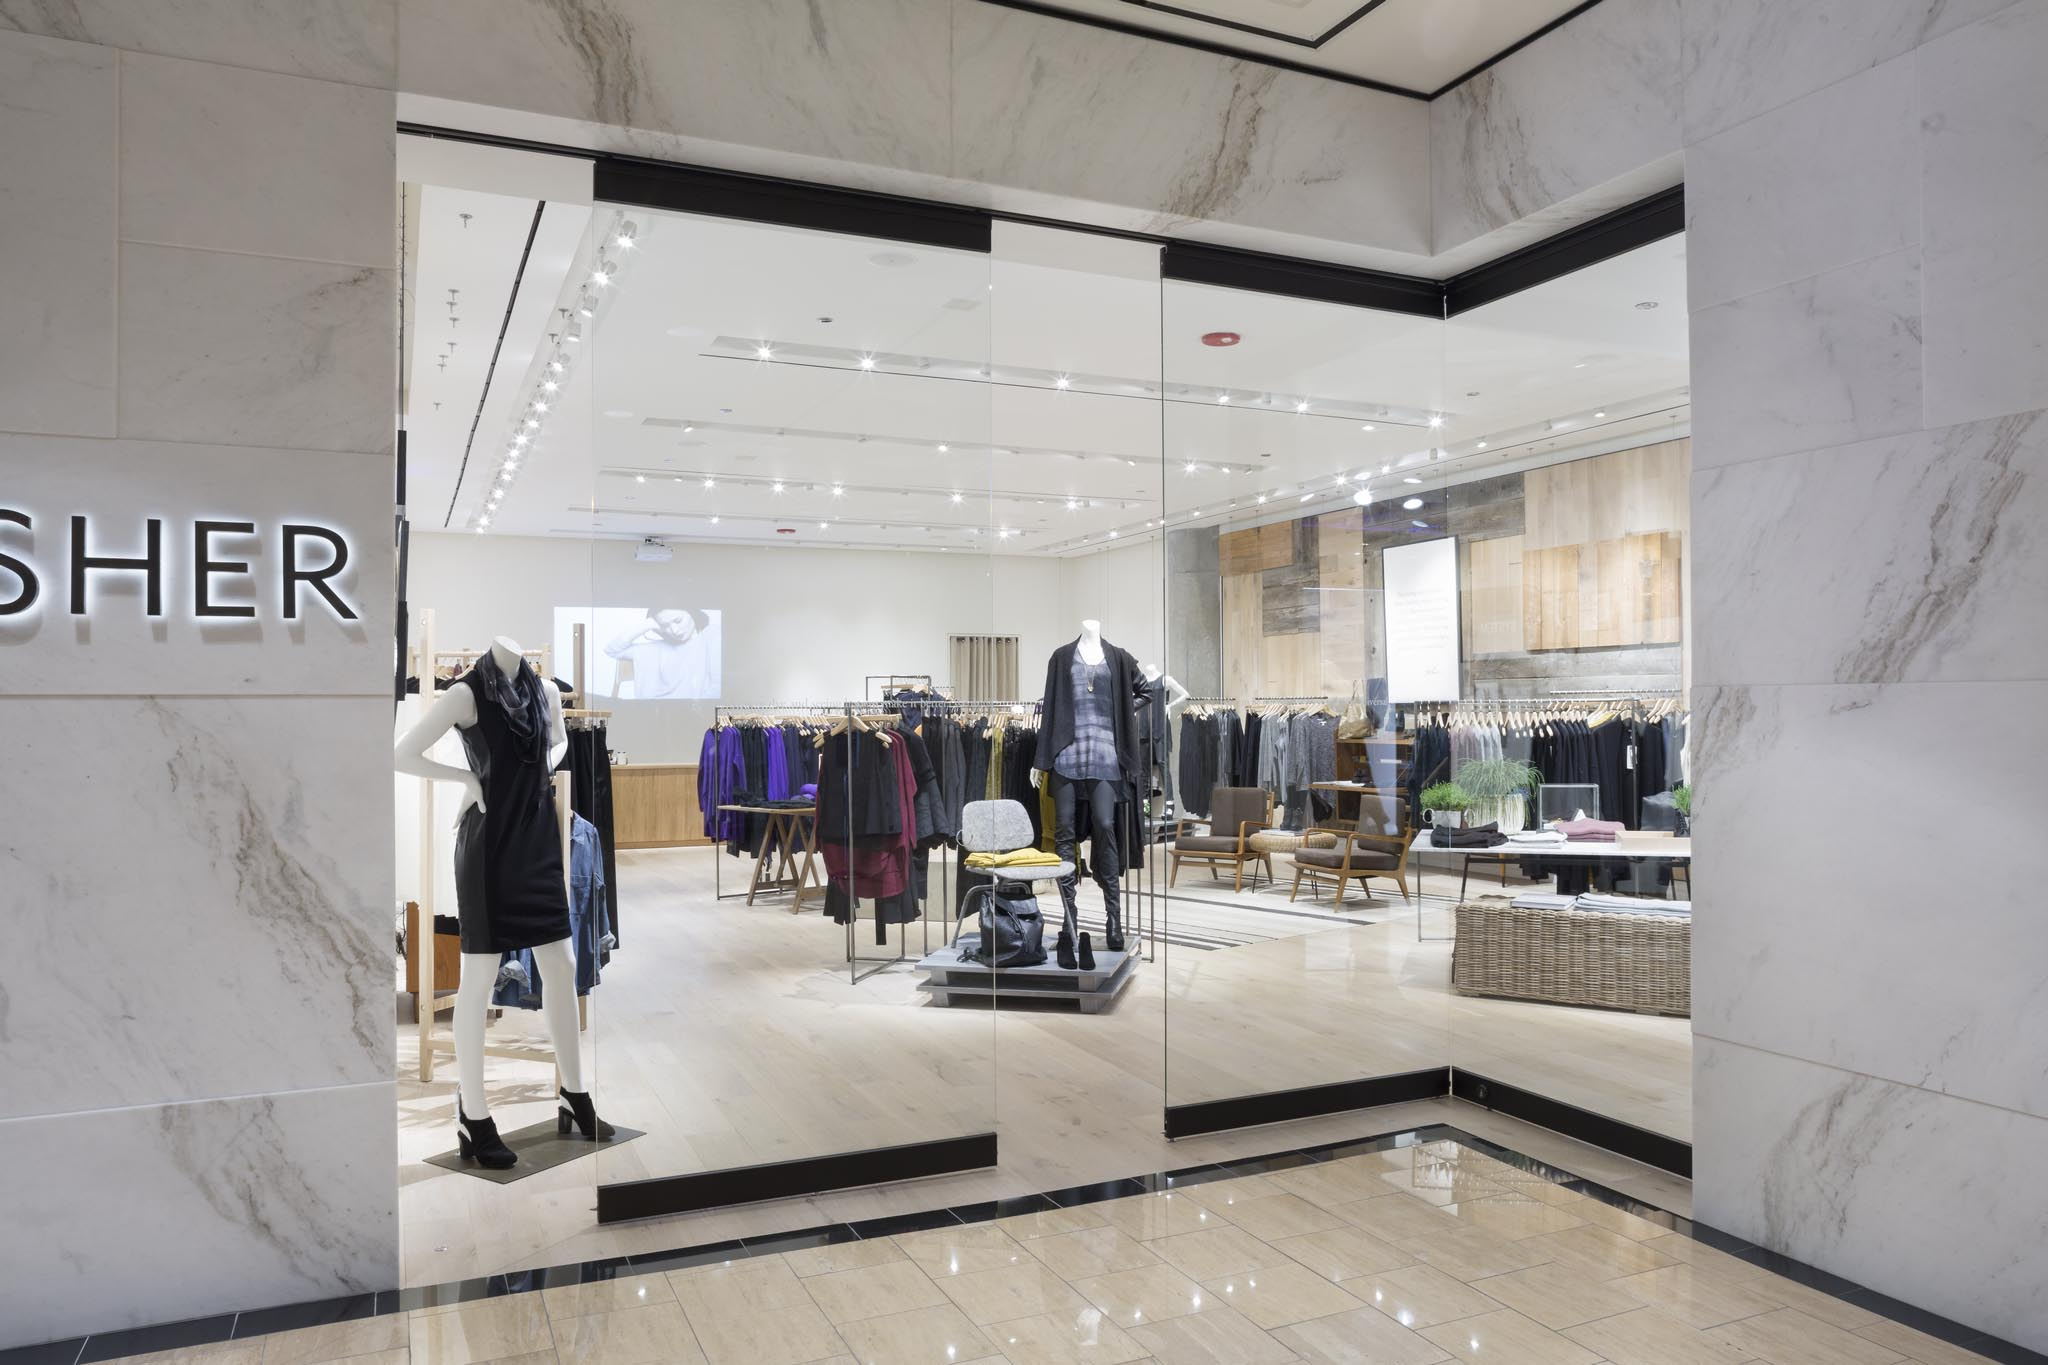 eileen fisher case study Well-established fashion brand eileen fisher has traditionally appealed to older  women however, to drive growth, eileen fisher's management team wants to.